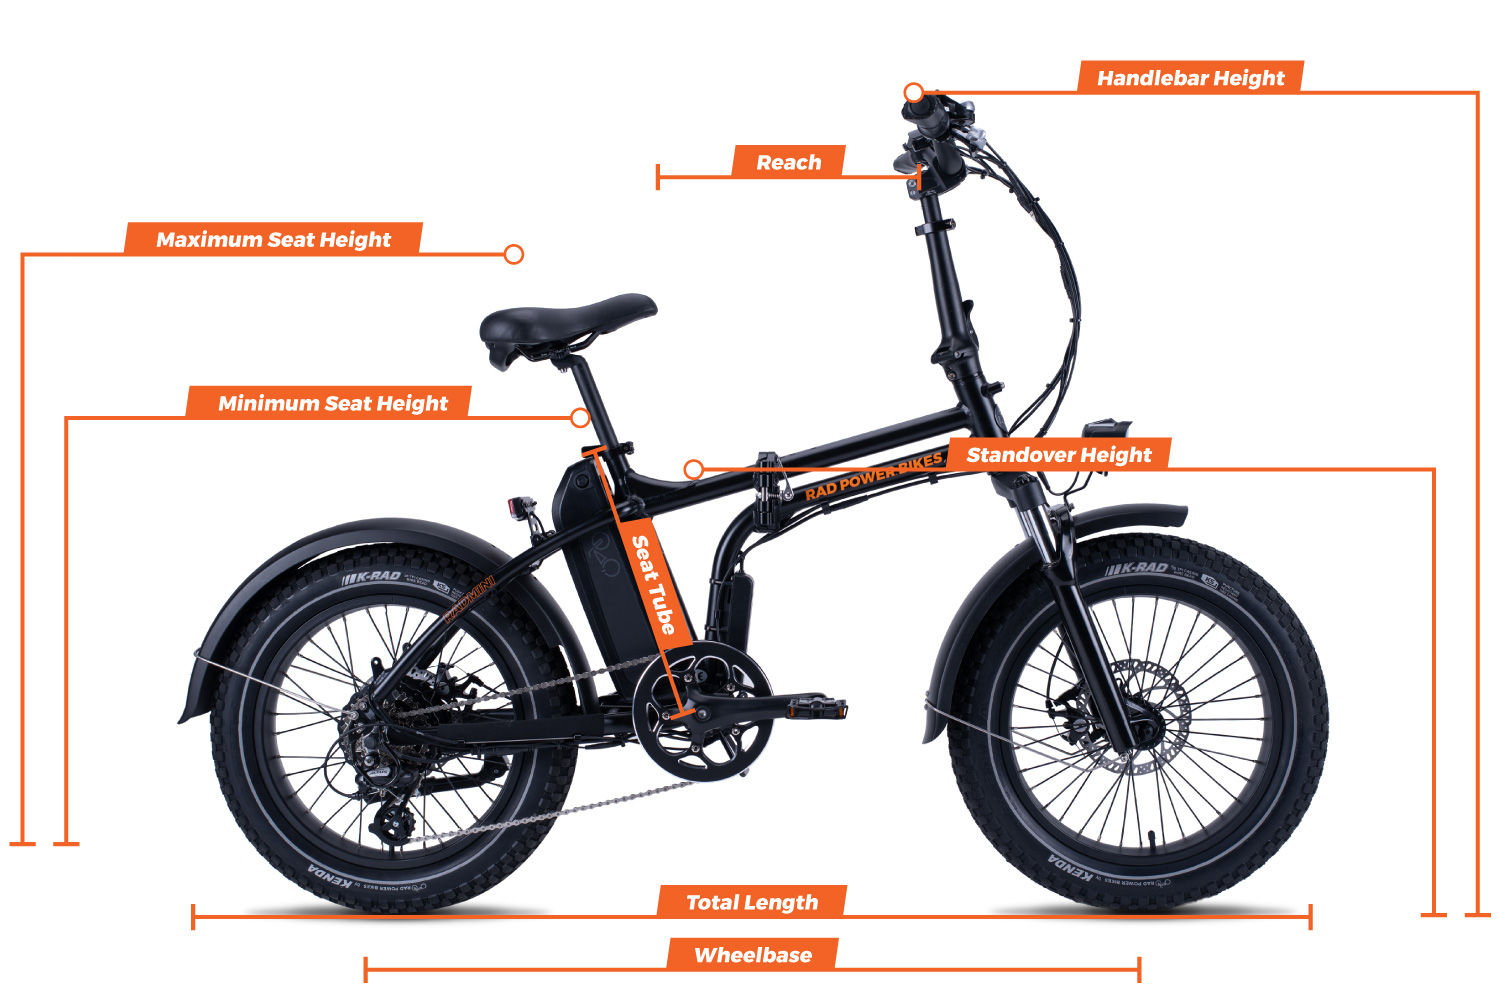 Geometry chart for the RadMini Electric Fat Bike Version 4